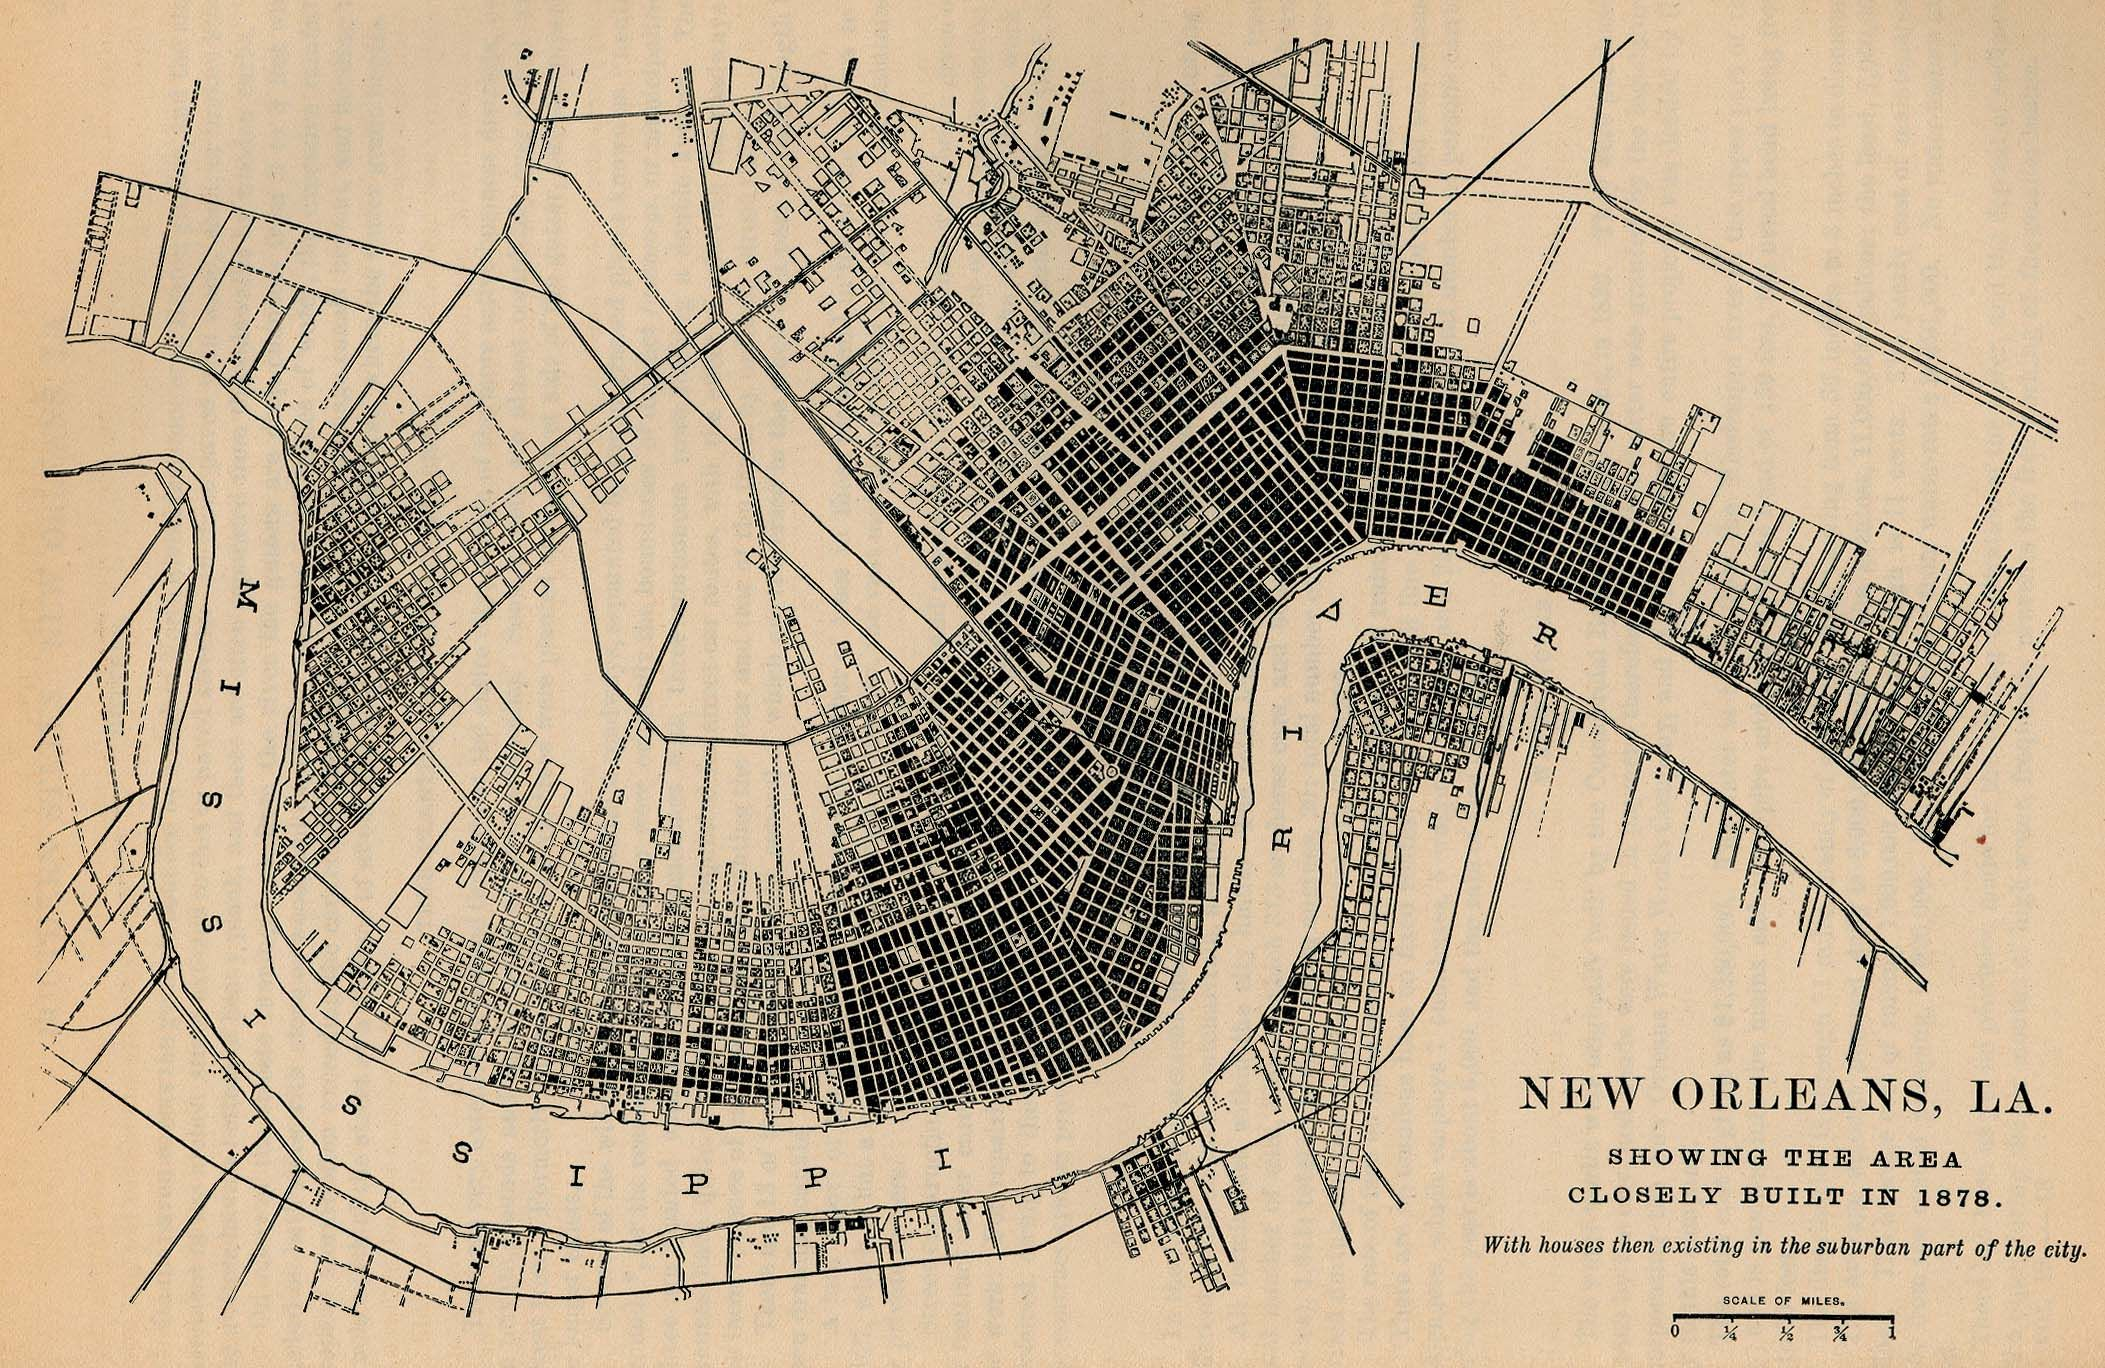 New Orleans La Showing The Area Closely Built In 1878 With